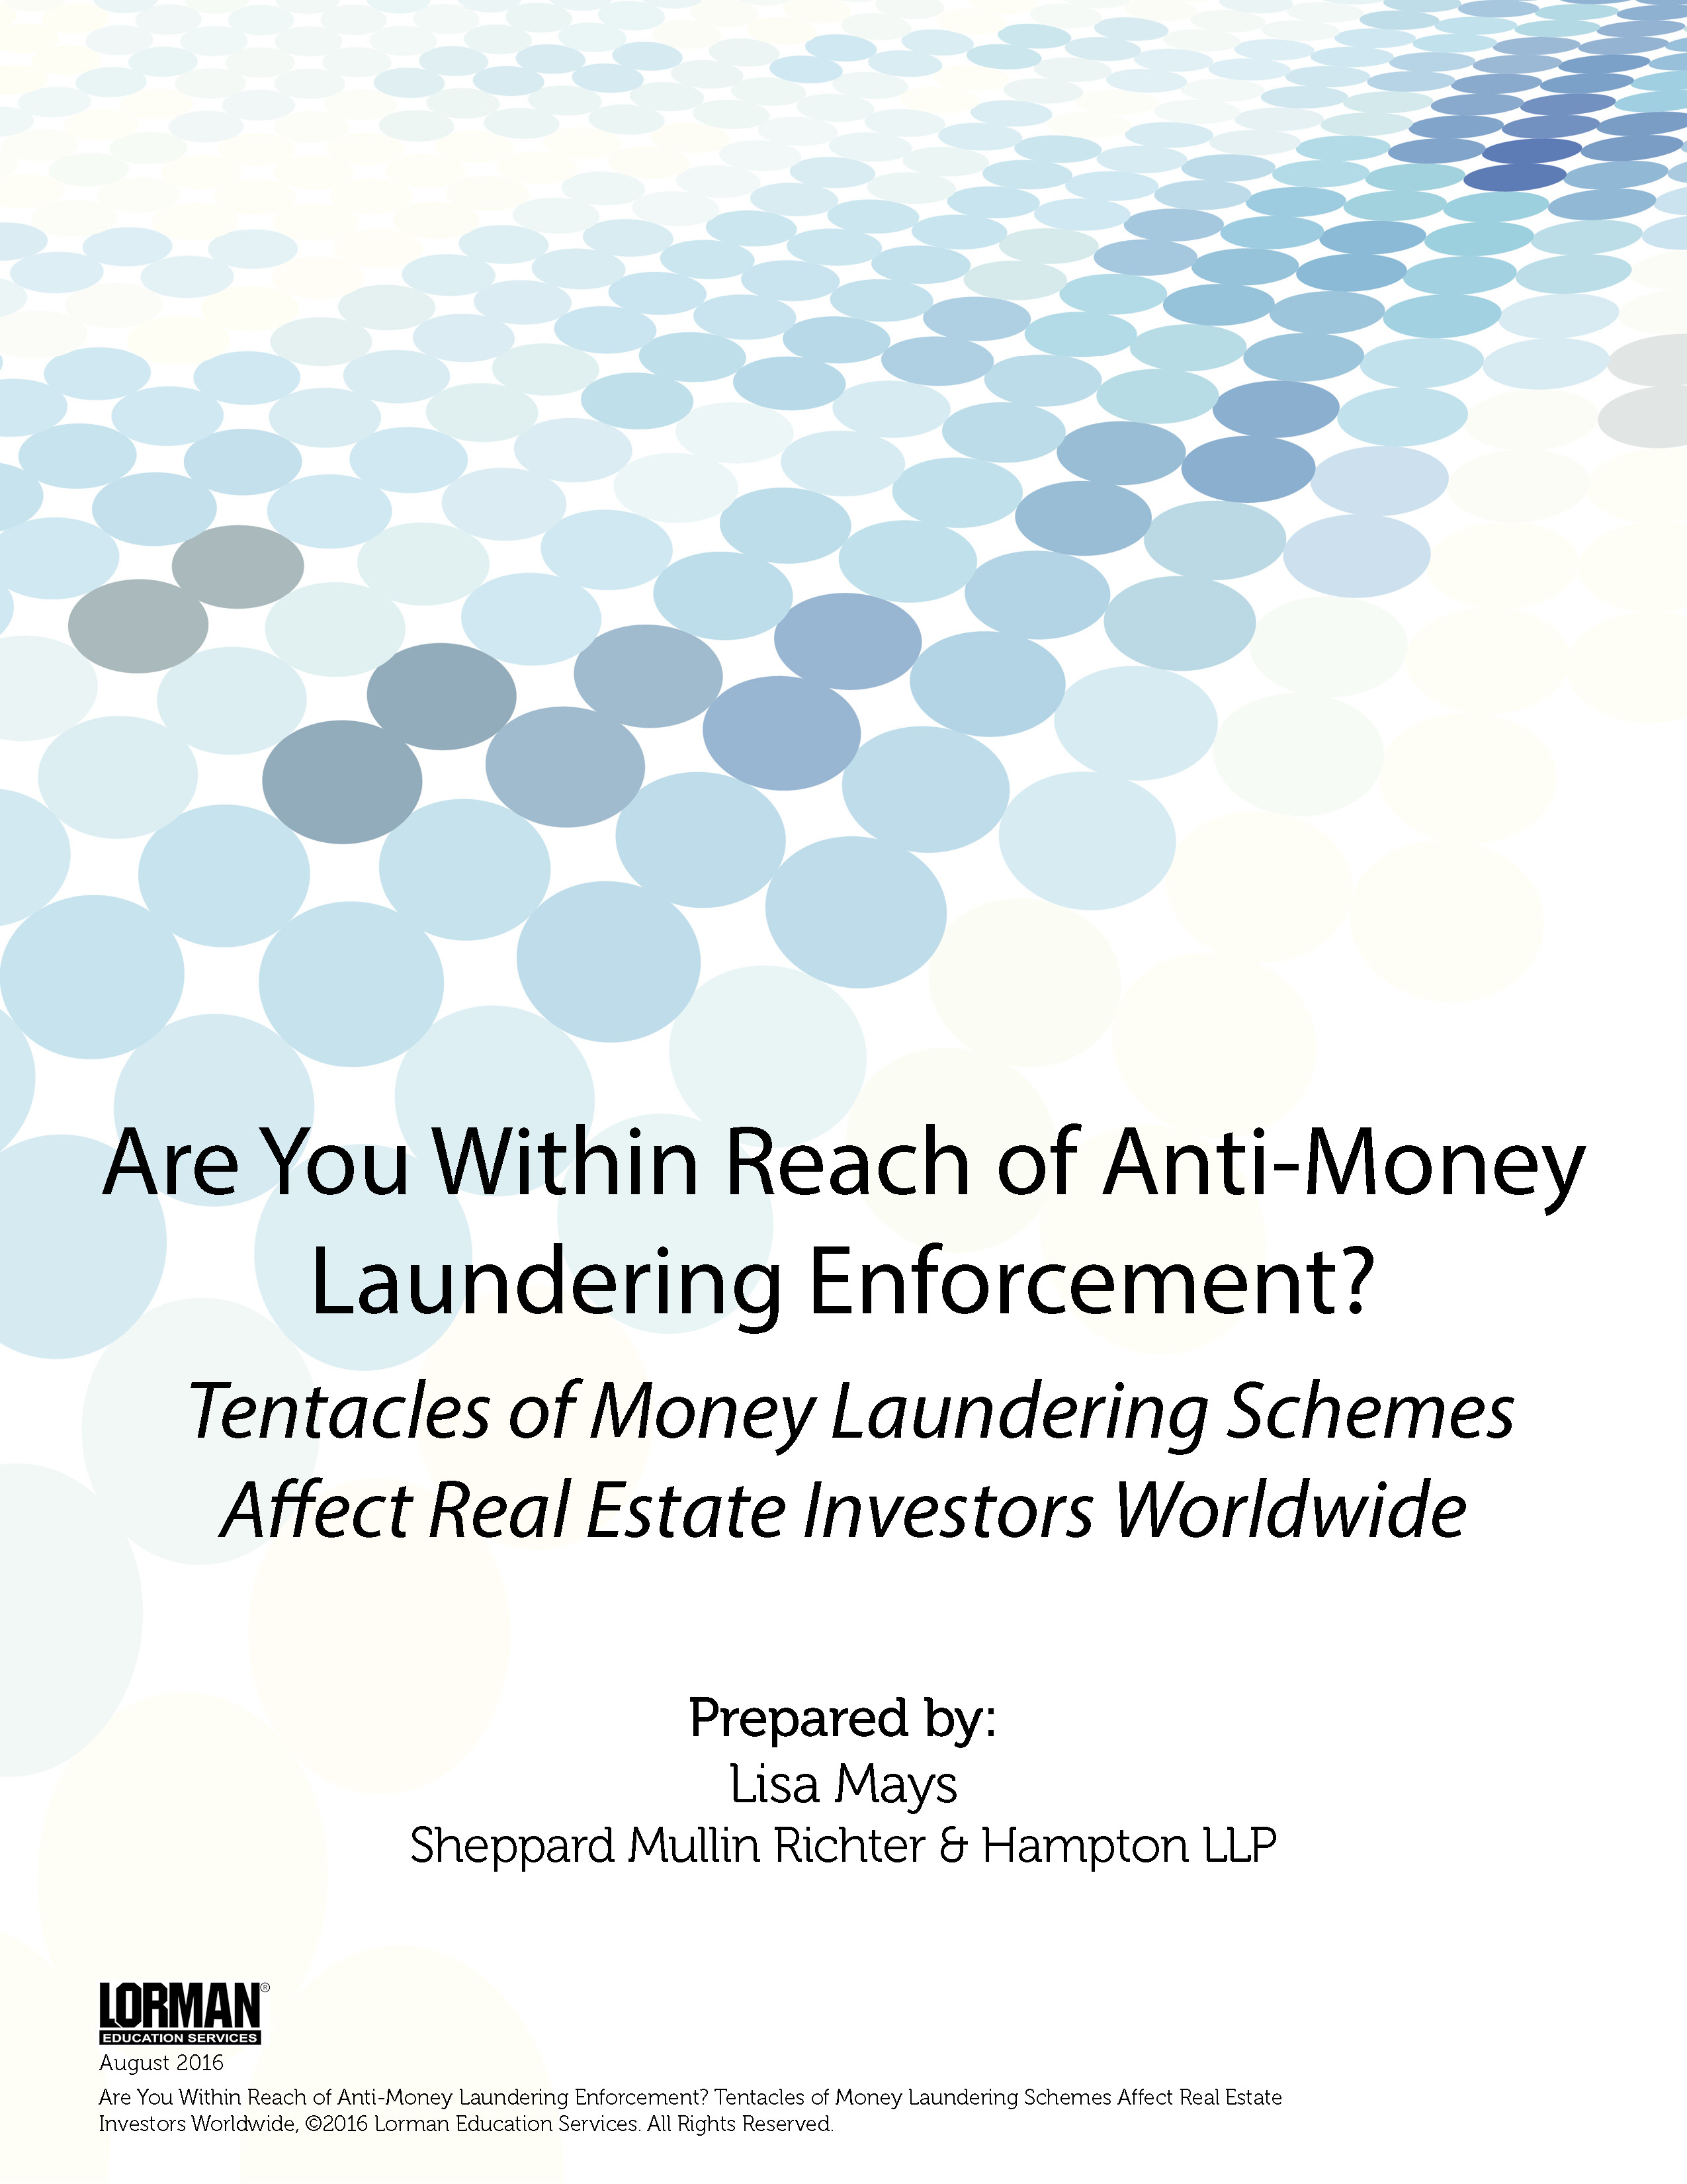 Are You Within Reach of Anti-Money Laundering Enforcement